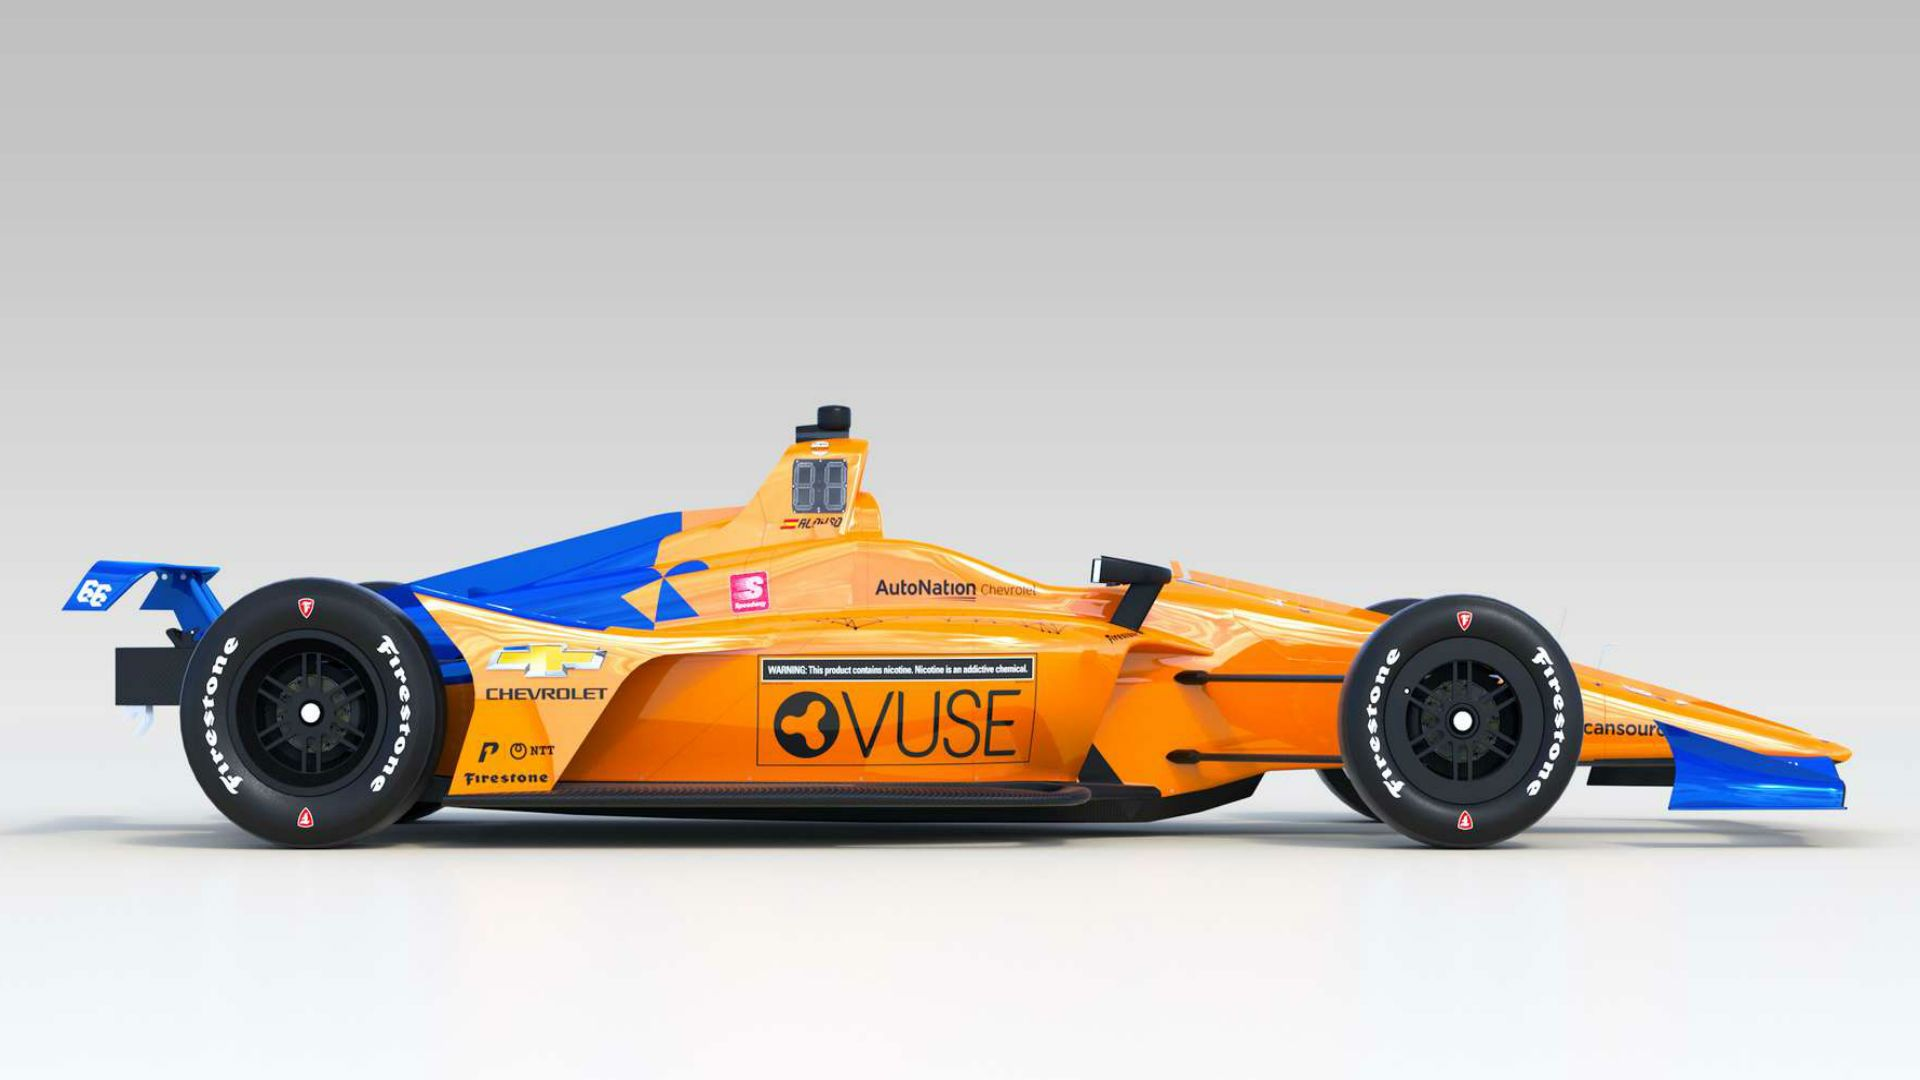 Behold the McLaren Indy Car Fernando Alonso Will Drive at the 2019 1920x1080